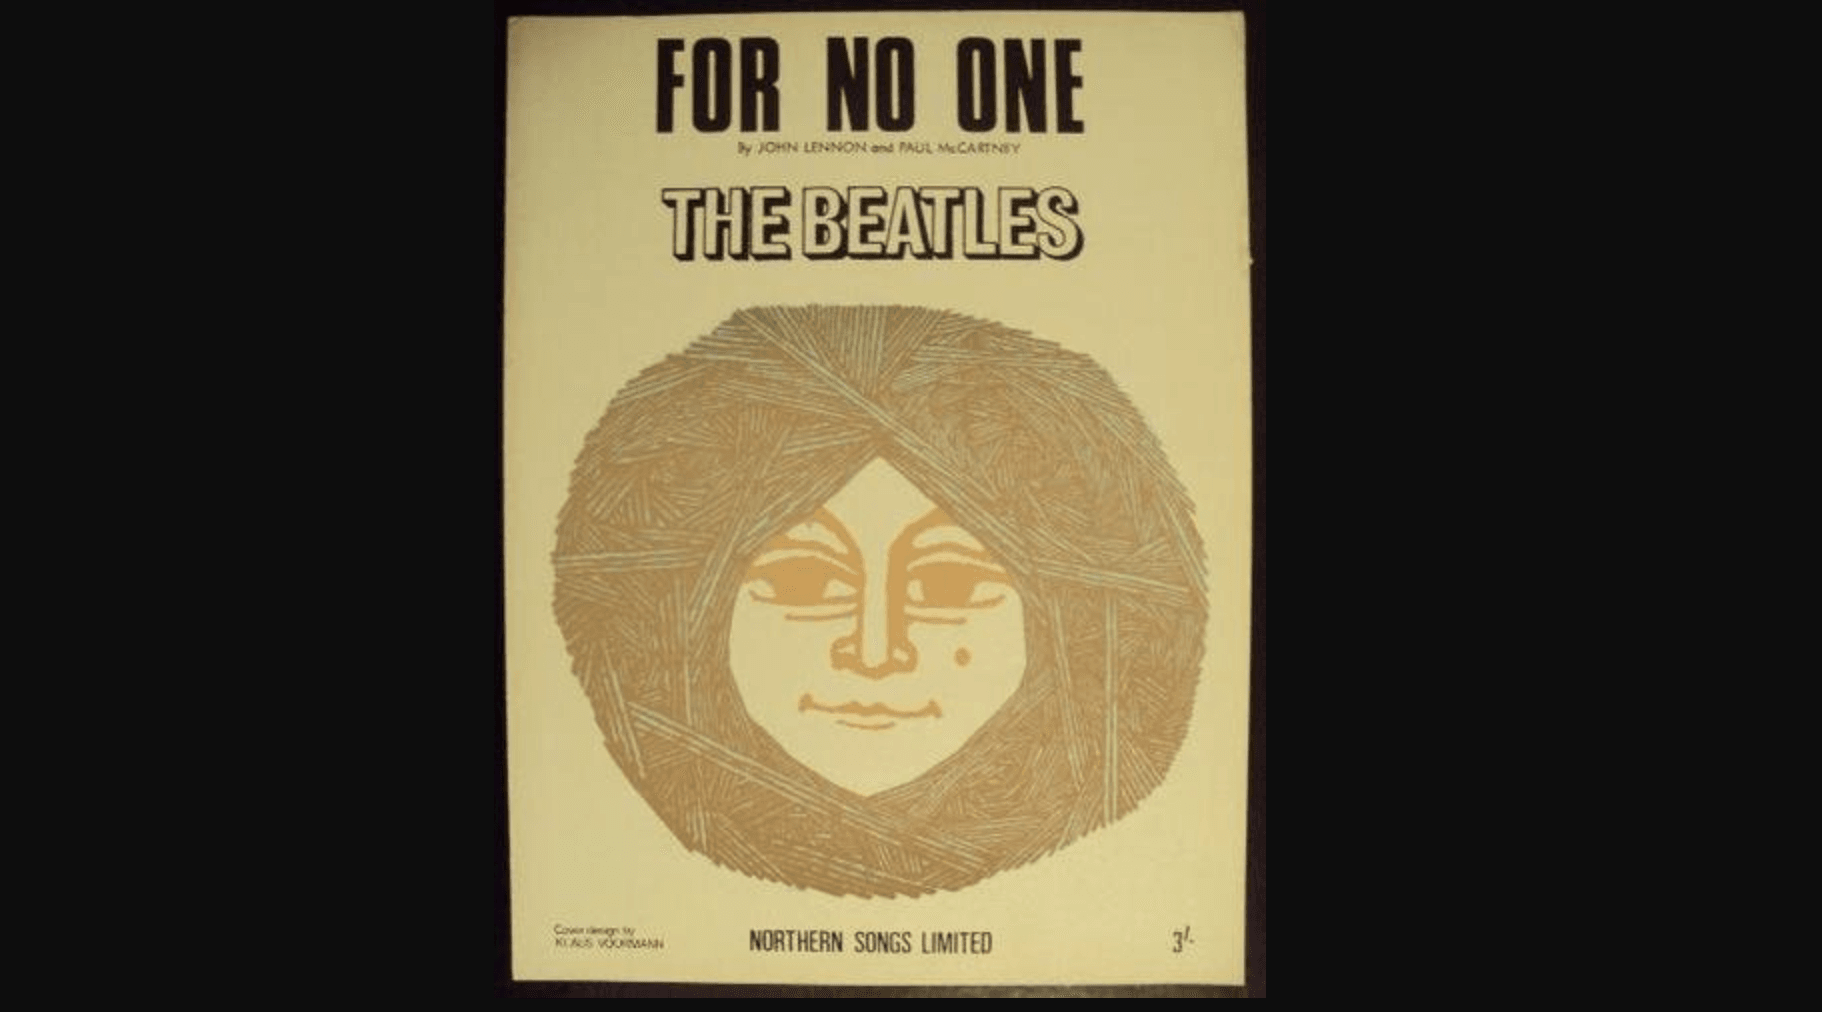 For-No-One-Beatles